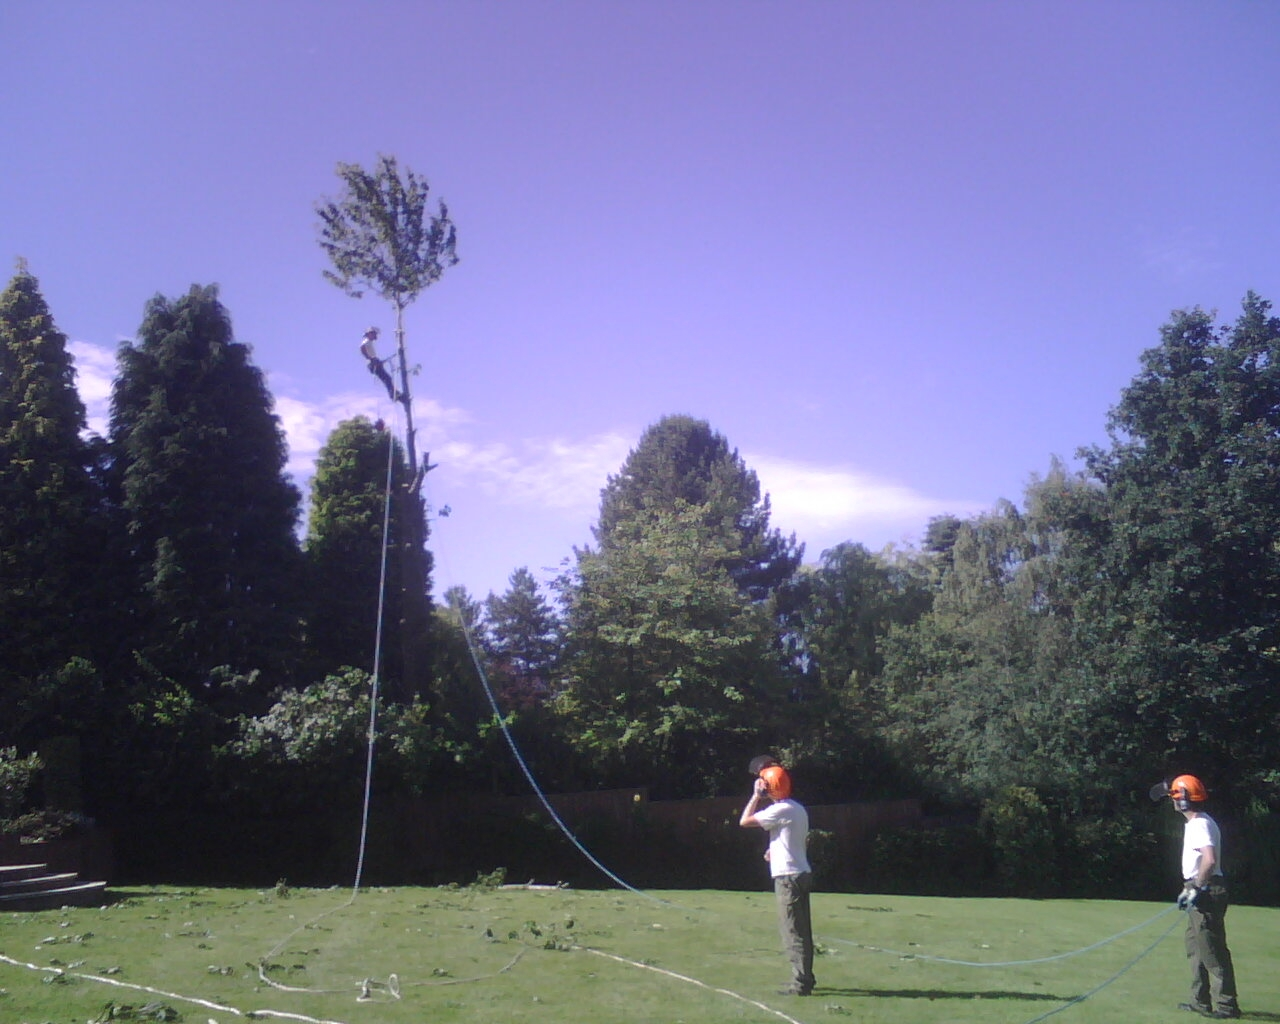 Tree surgery with lowering ropes